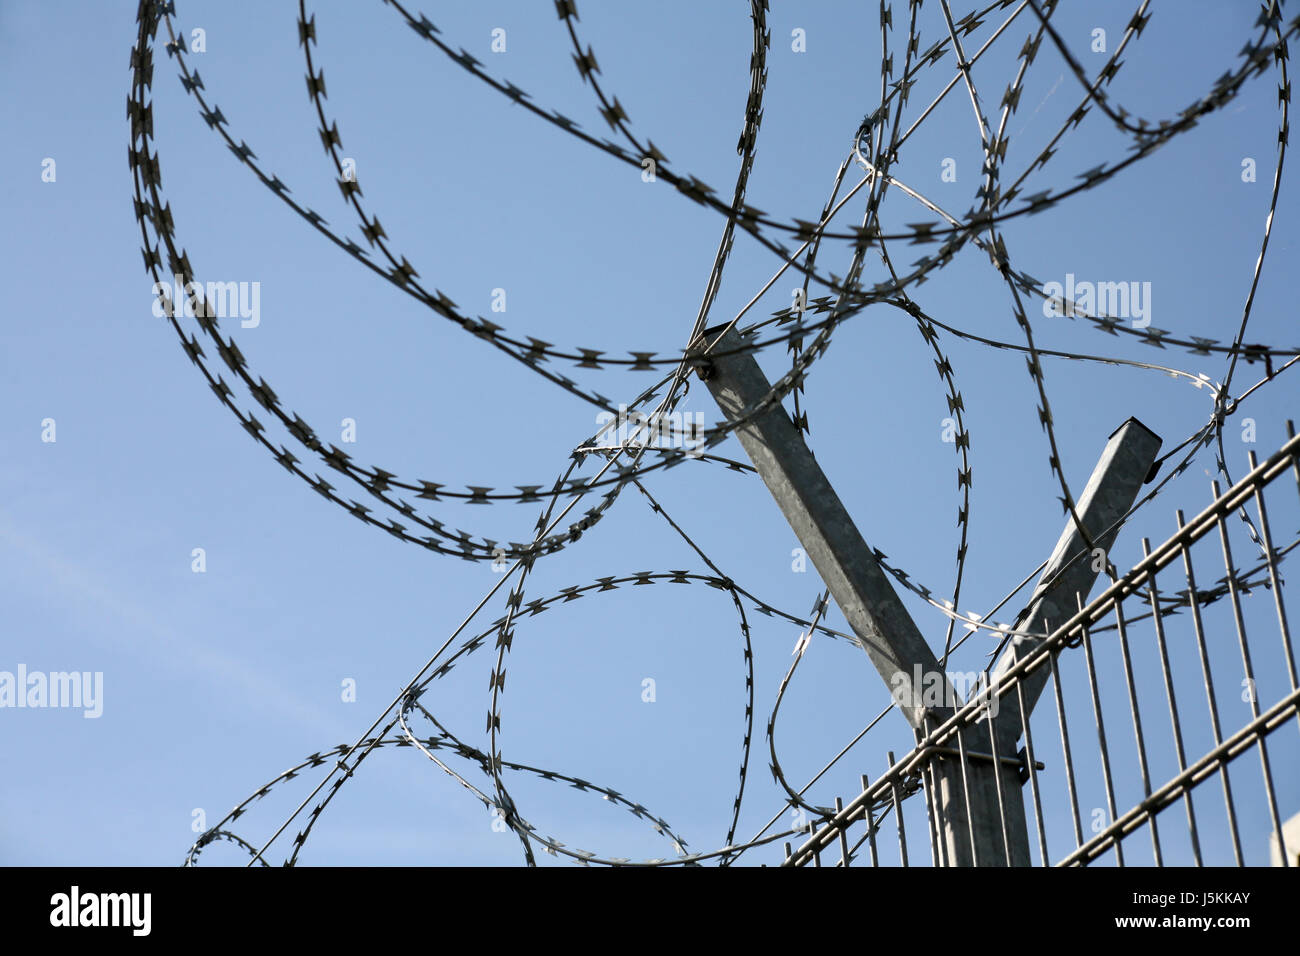 barbed wire entanglement - Stock Image